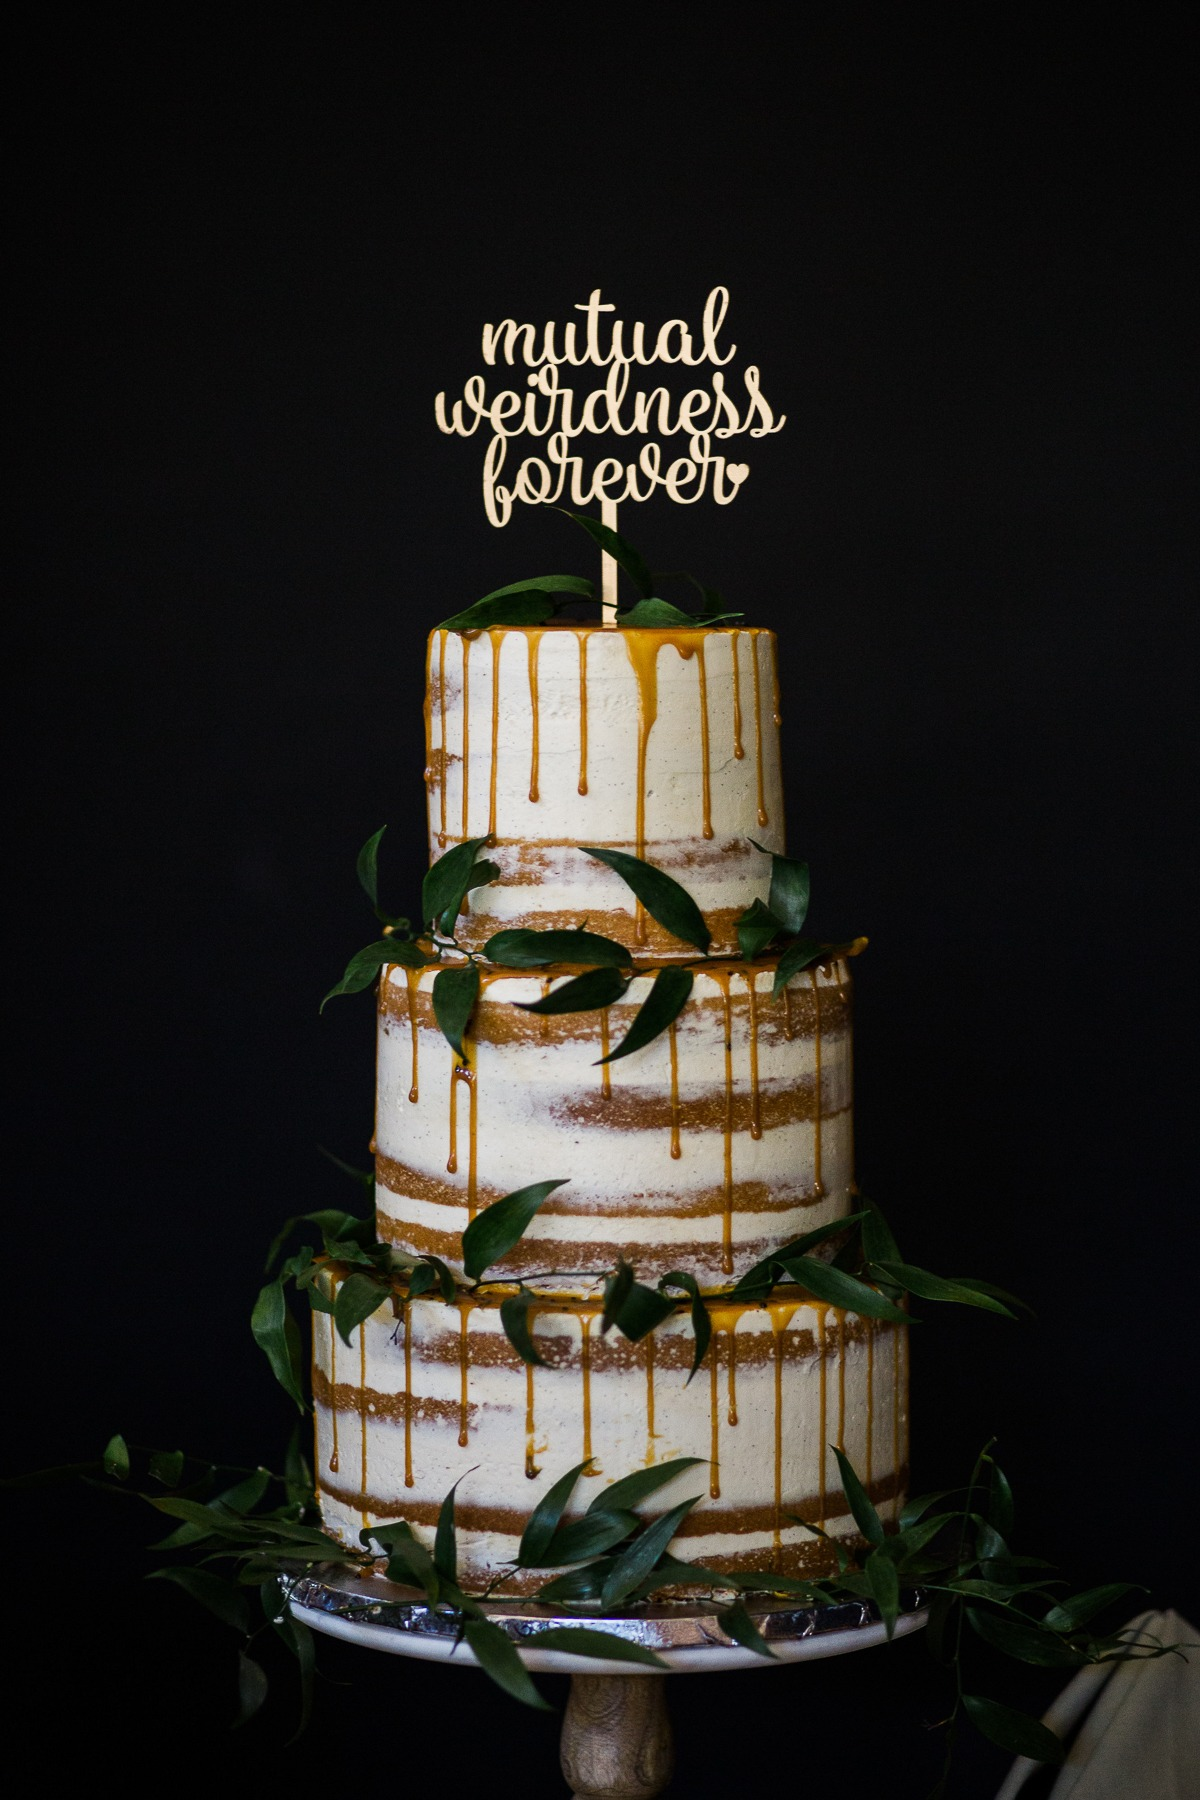 Caramel drizzle wedding cake